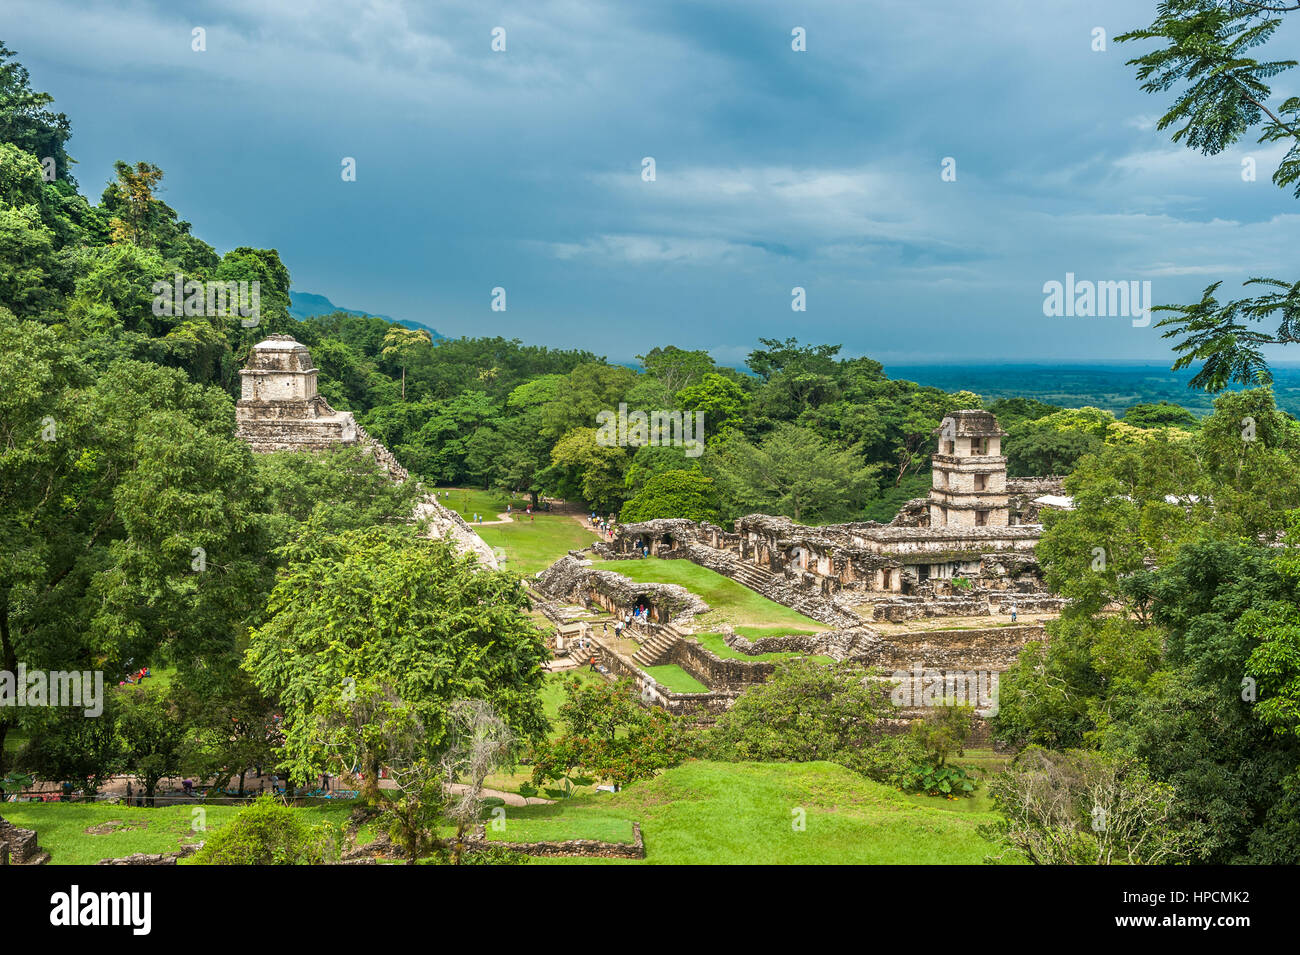 Ruins of Palenque, Mexico - Stock Image